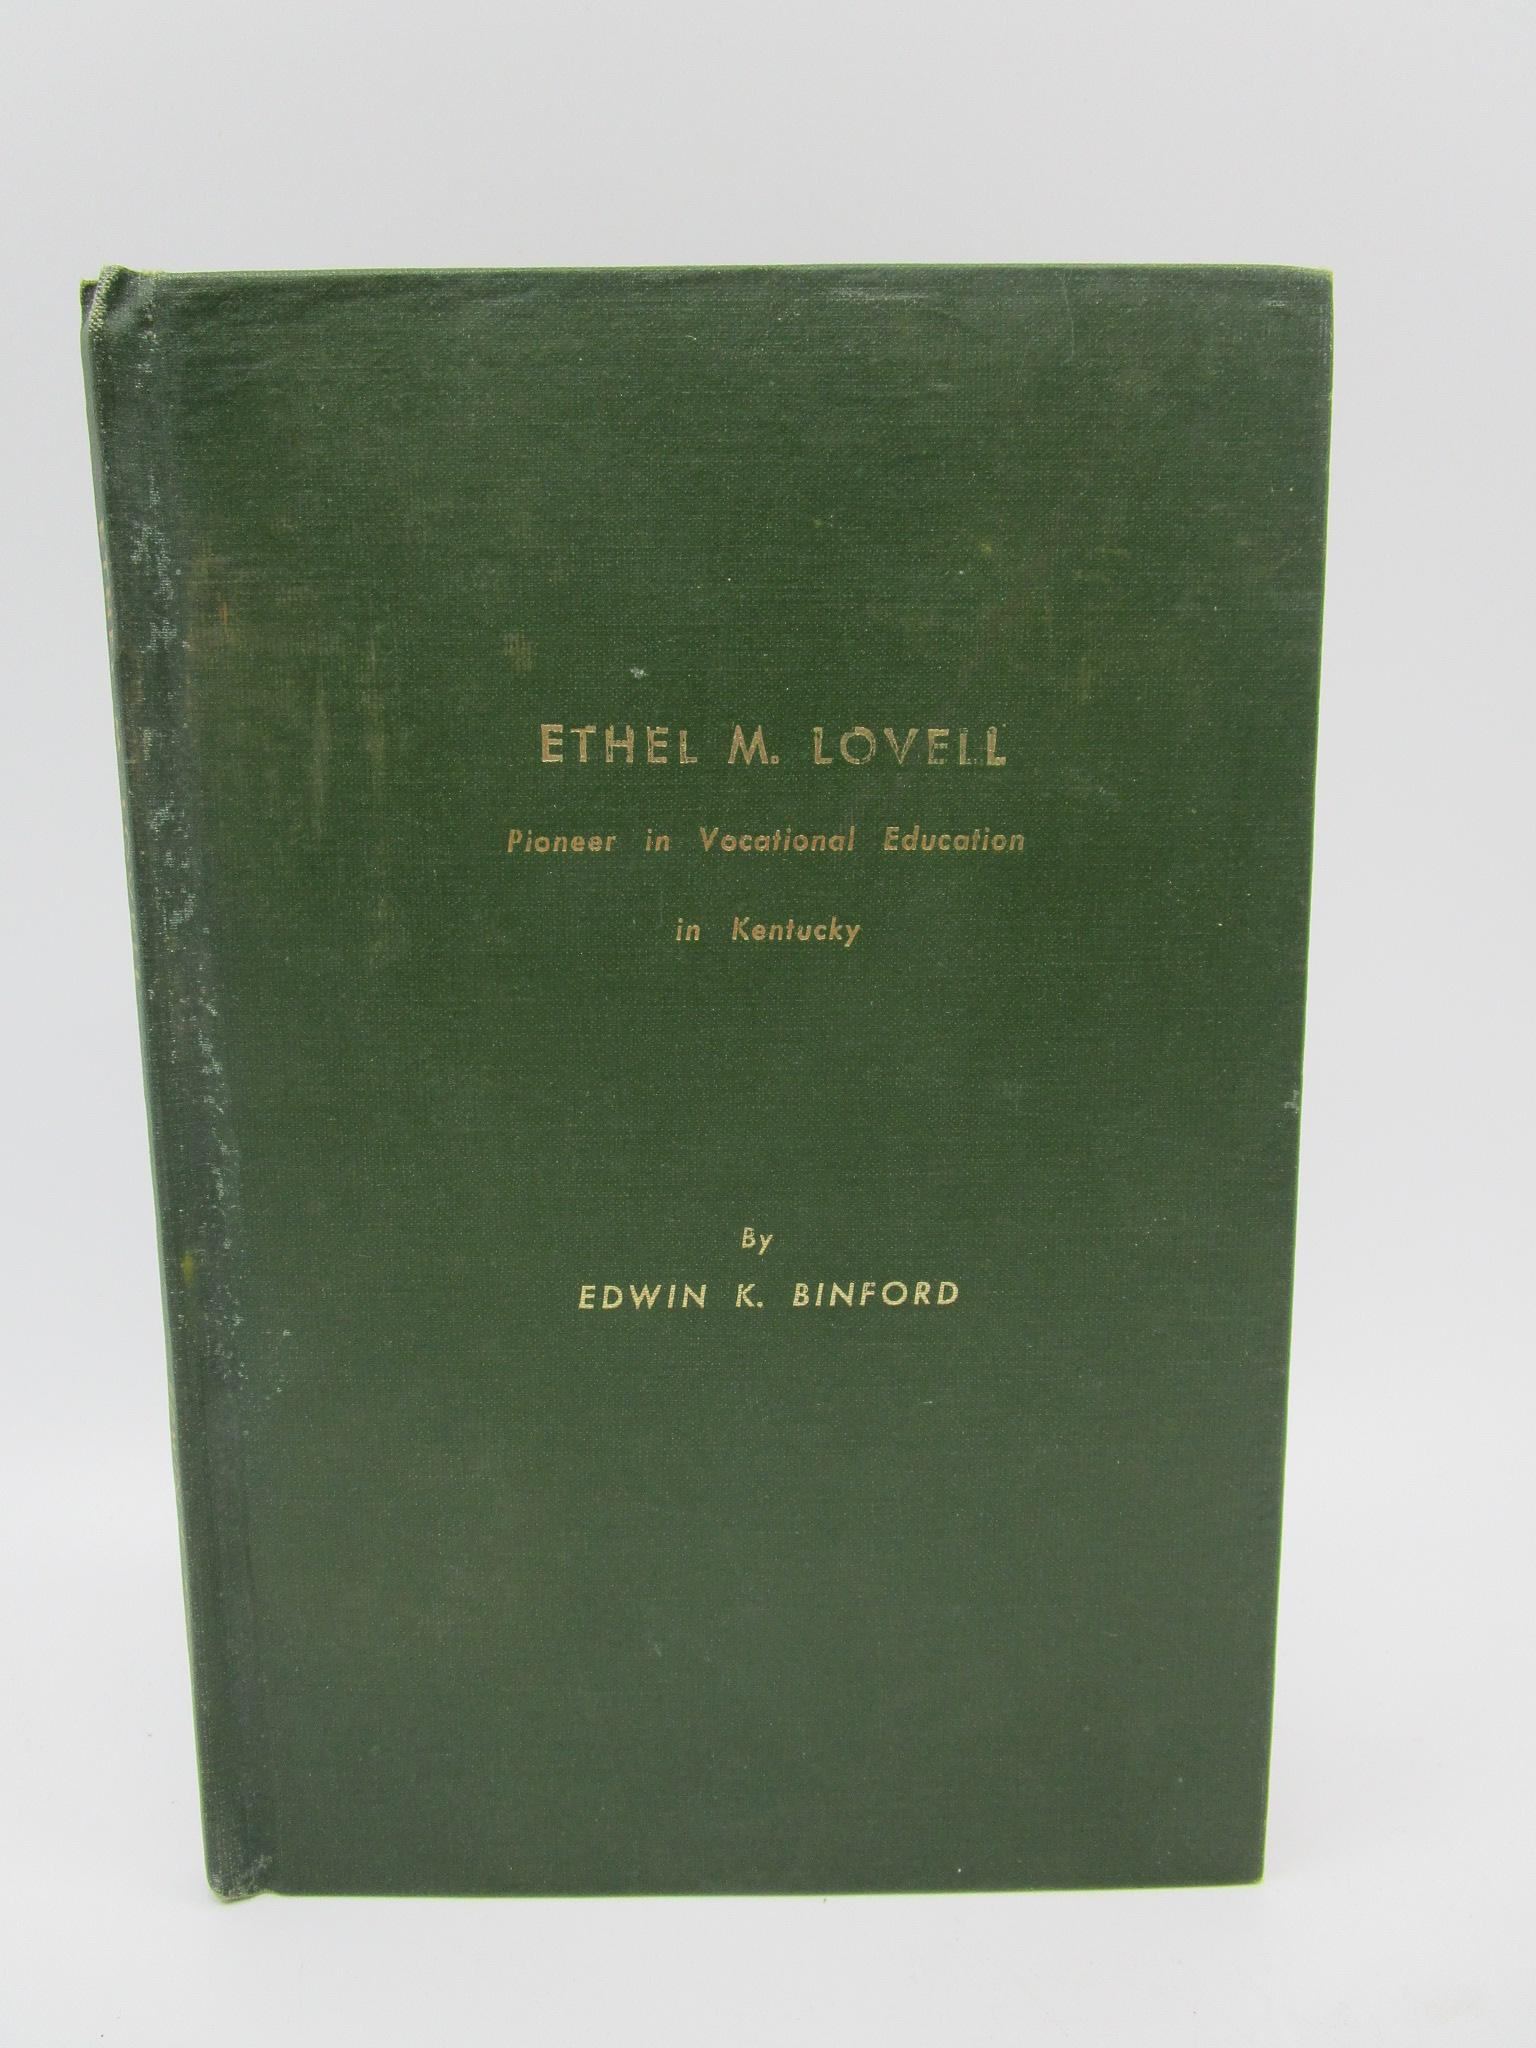 Image for Ethel Martha Lovell; Pioneer in Vocational Education in Kentucky (first edition) (Ethel M. Lovell)